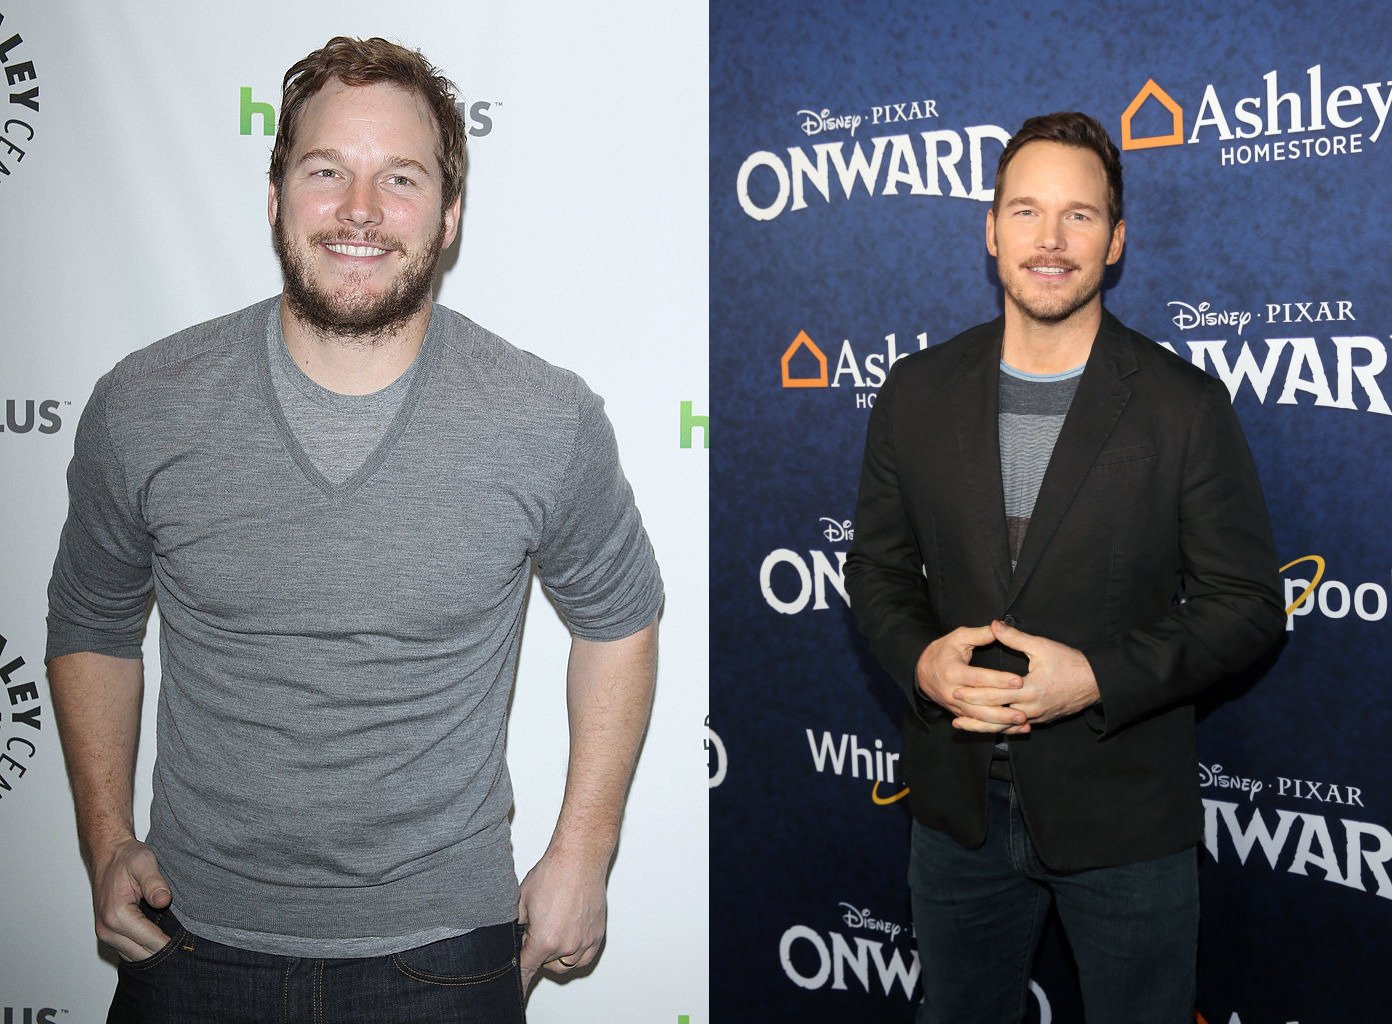 Image Credits: Getty Images/FilmMagic/Michael Tran - Getty Images/Jesse Grant